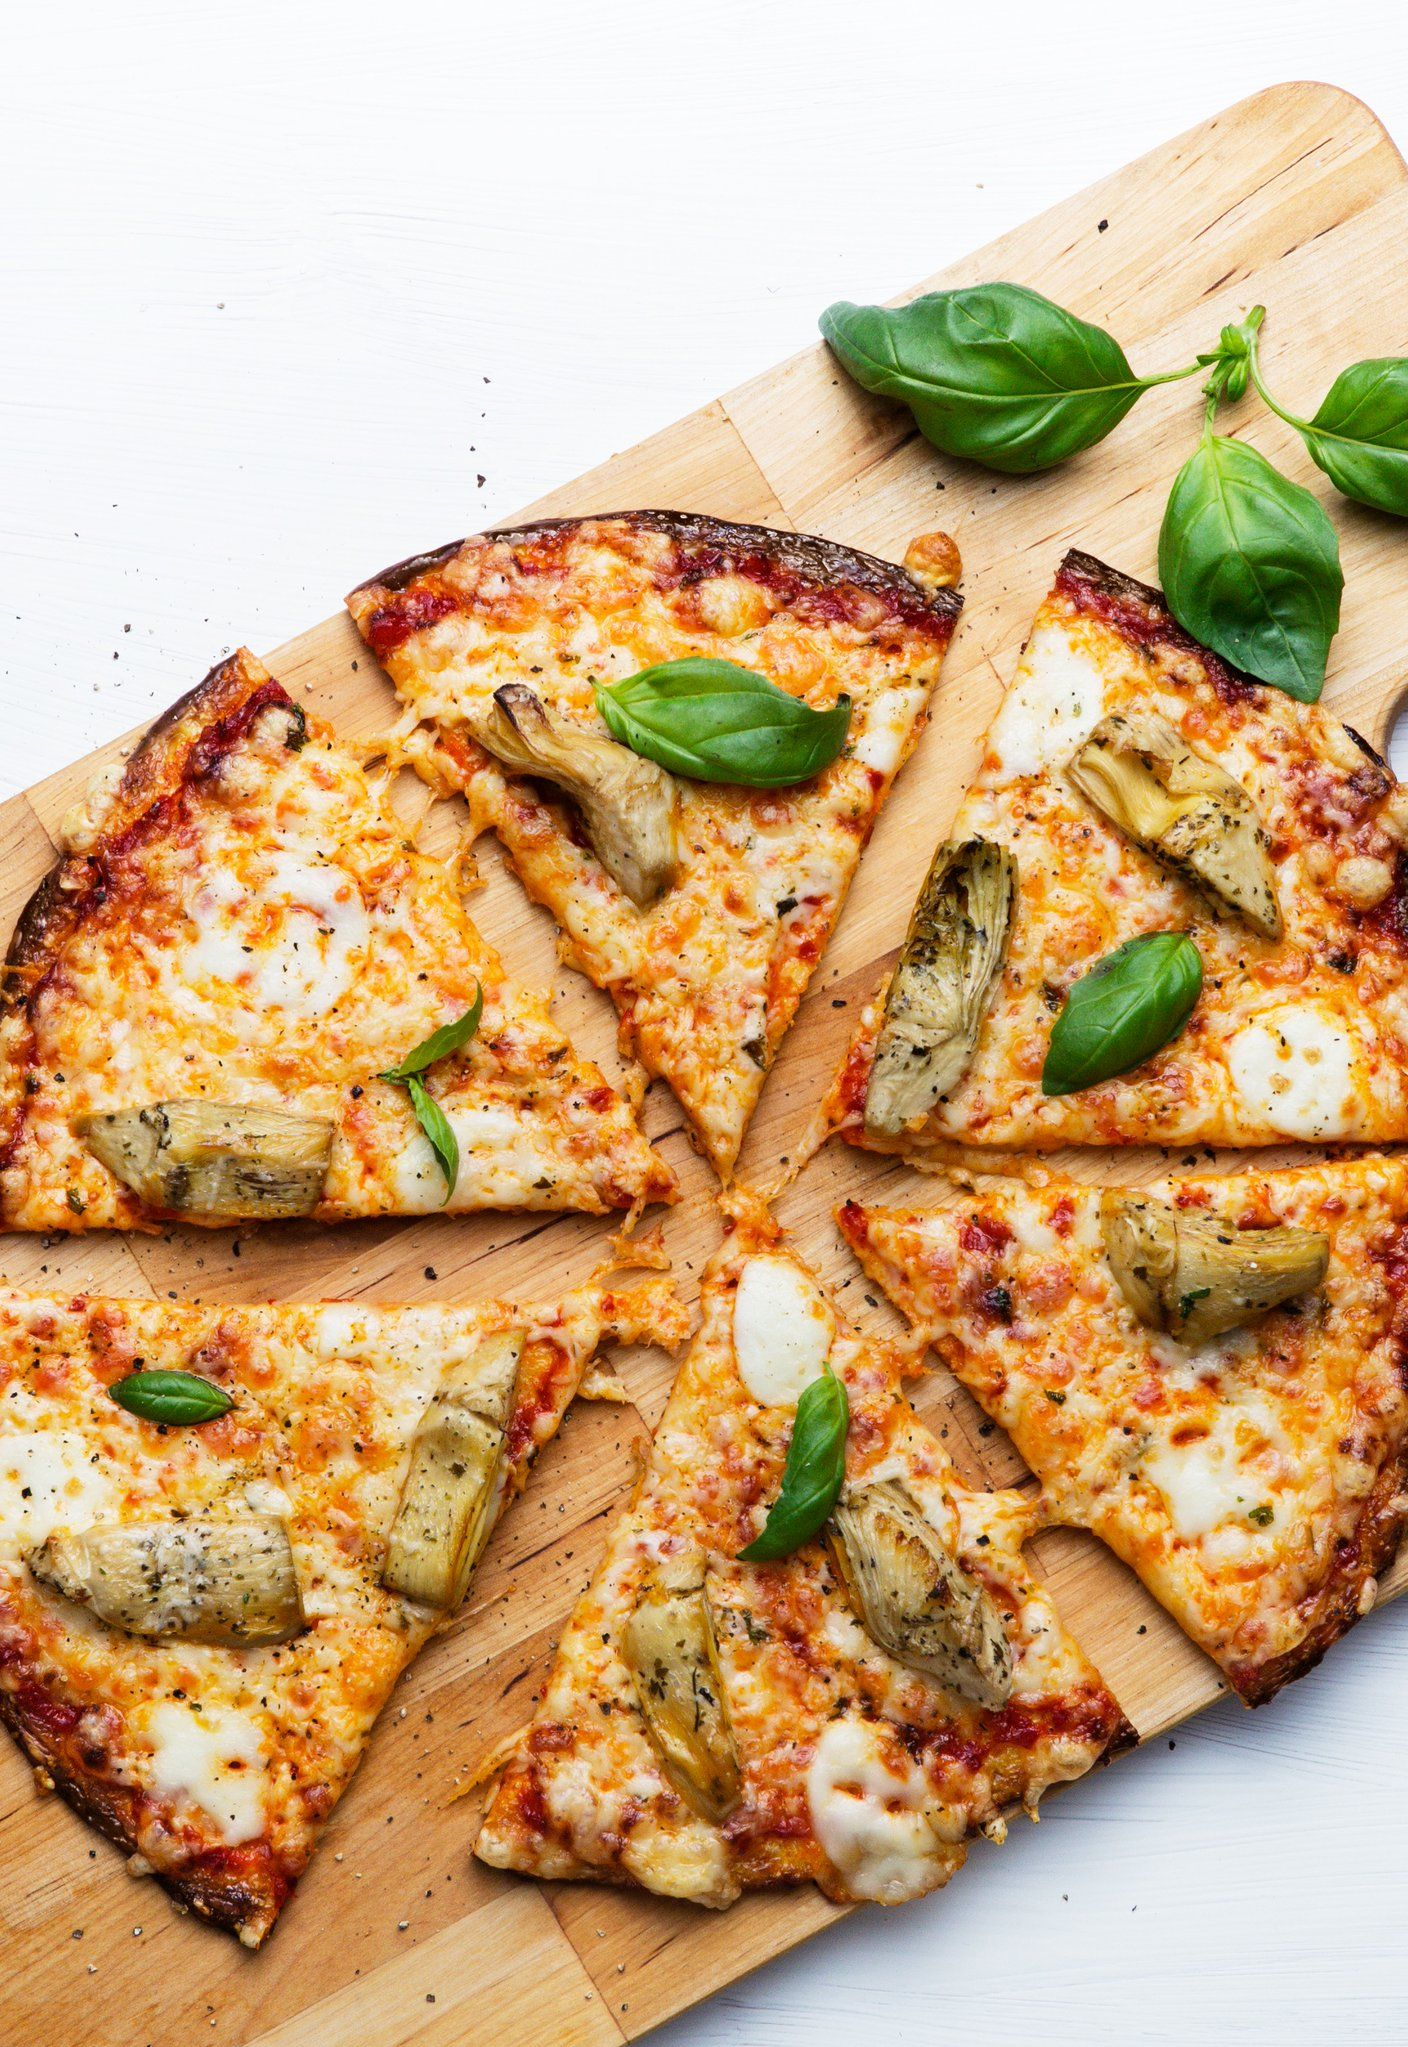 http://www.dietdoctor.com/recipes/low-carb-cauliflower-pizza-artichokes